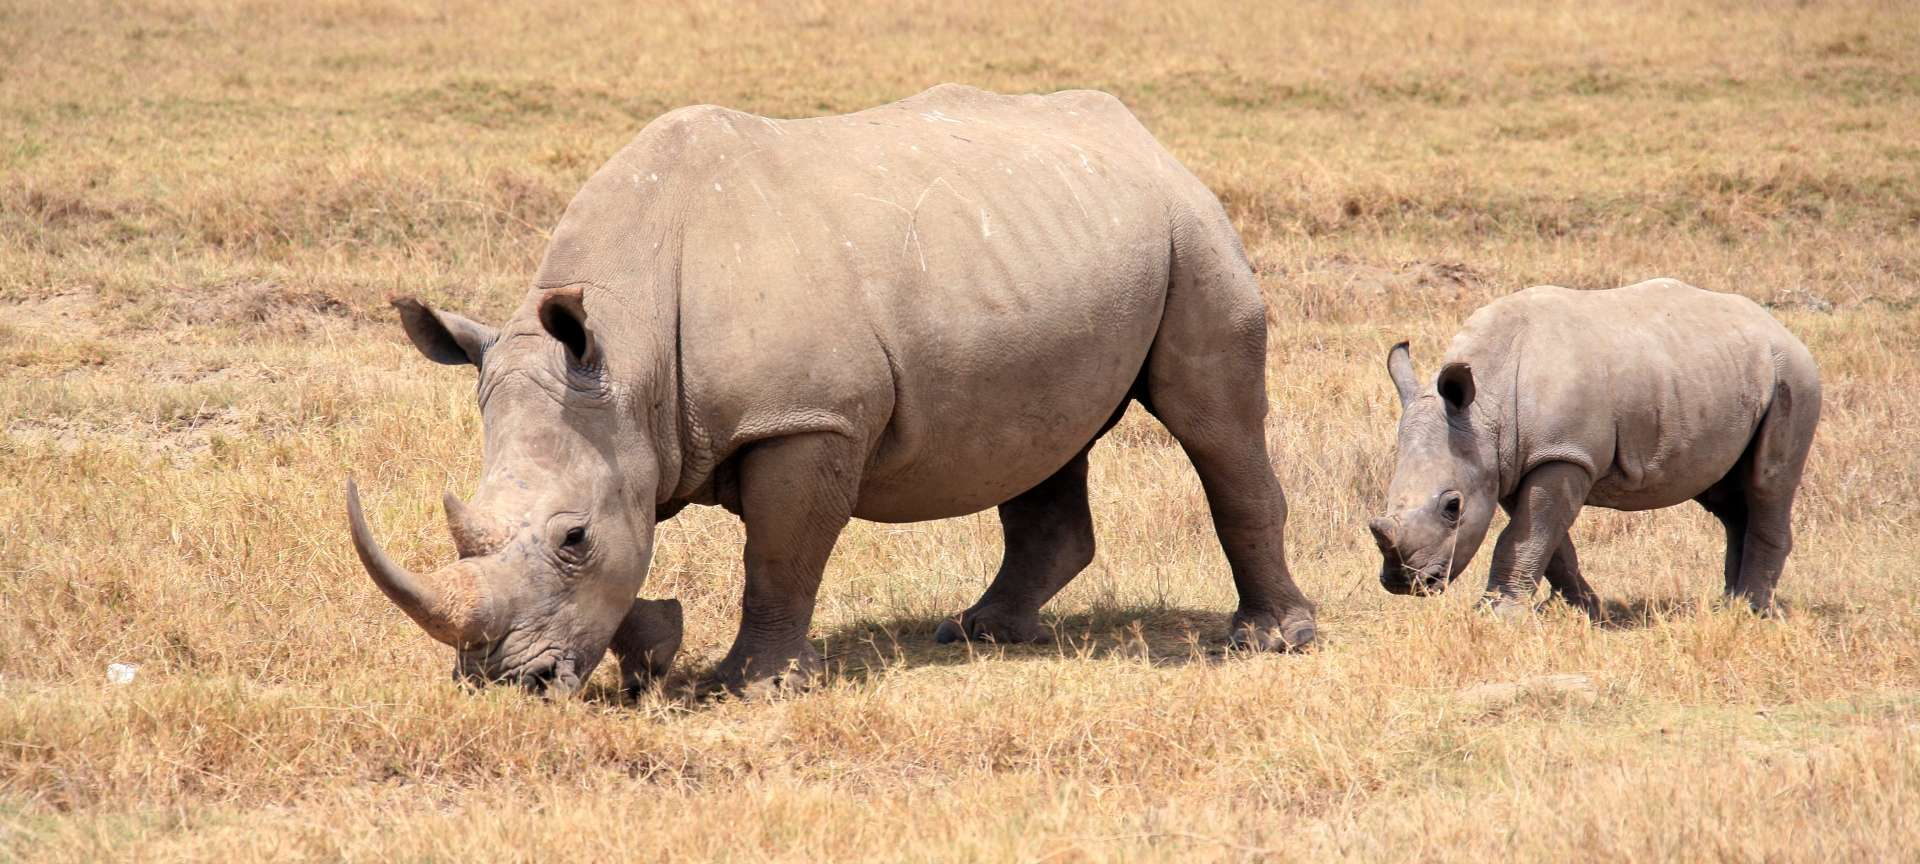 Rhino safaris in Africa - Africa Wildlife Safaris